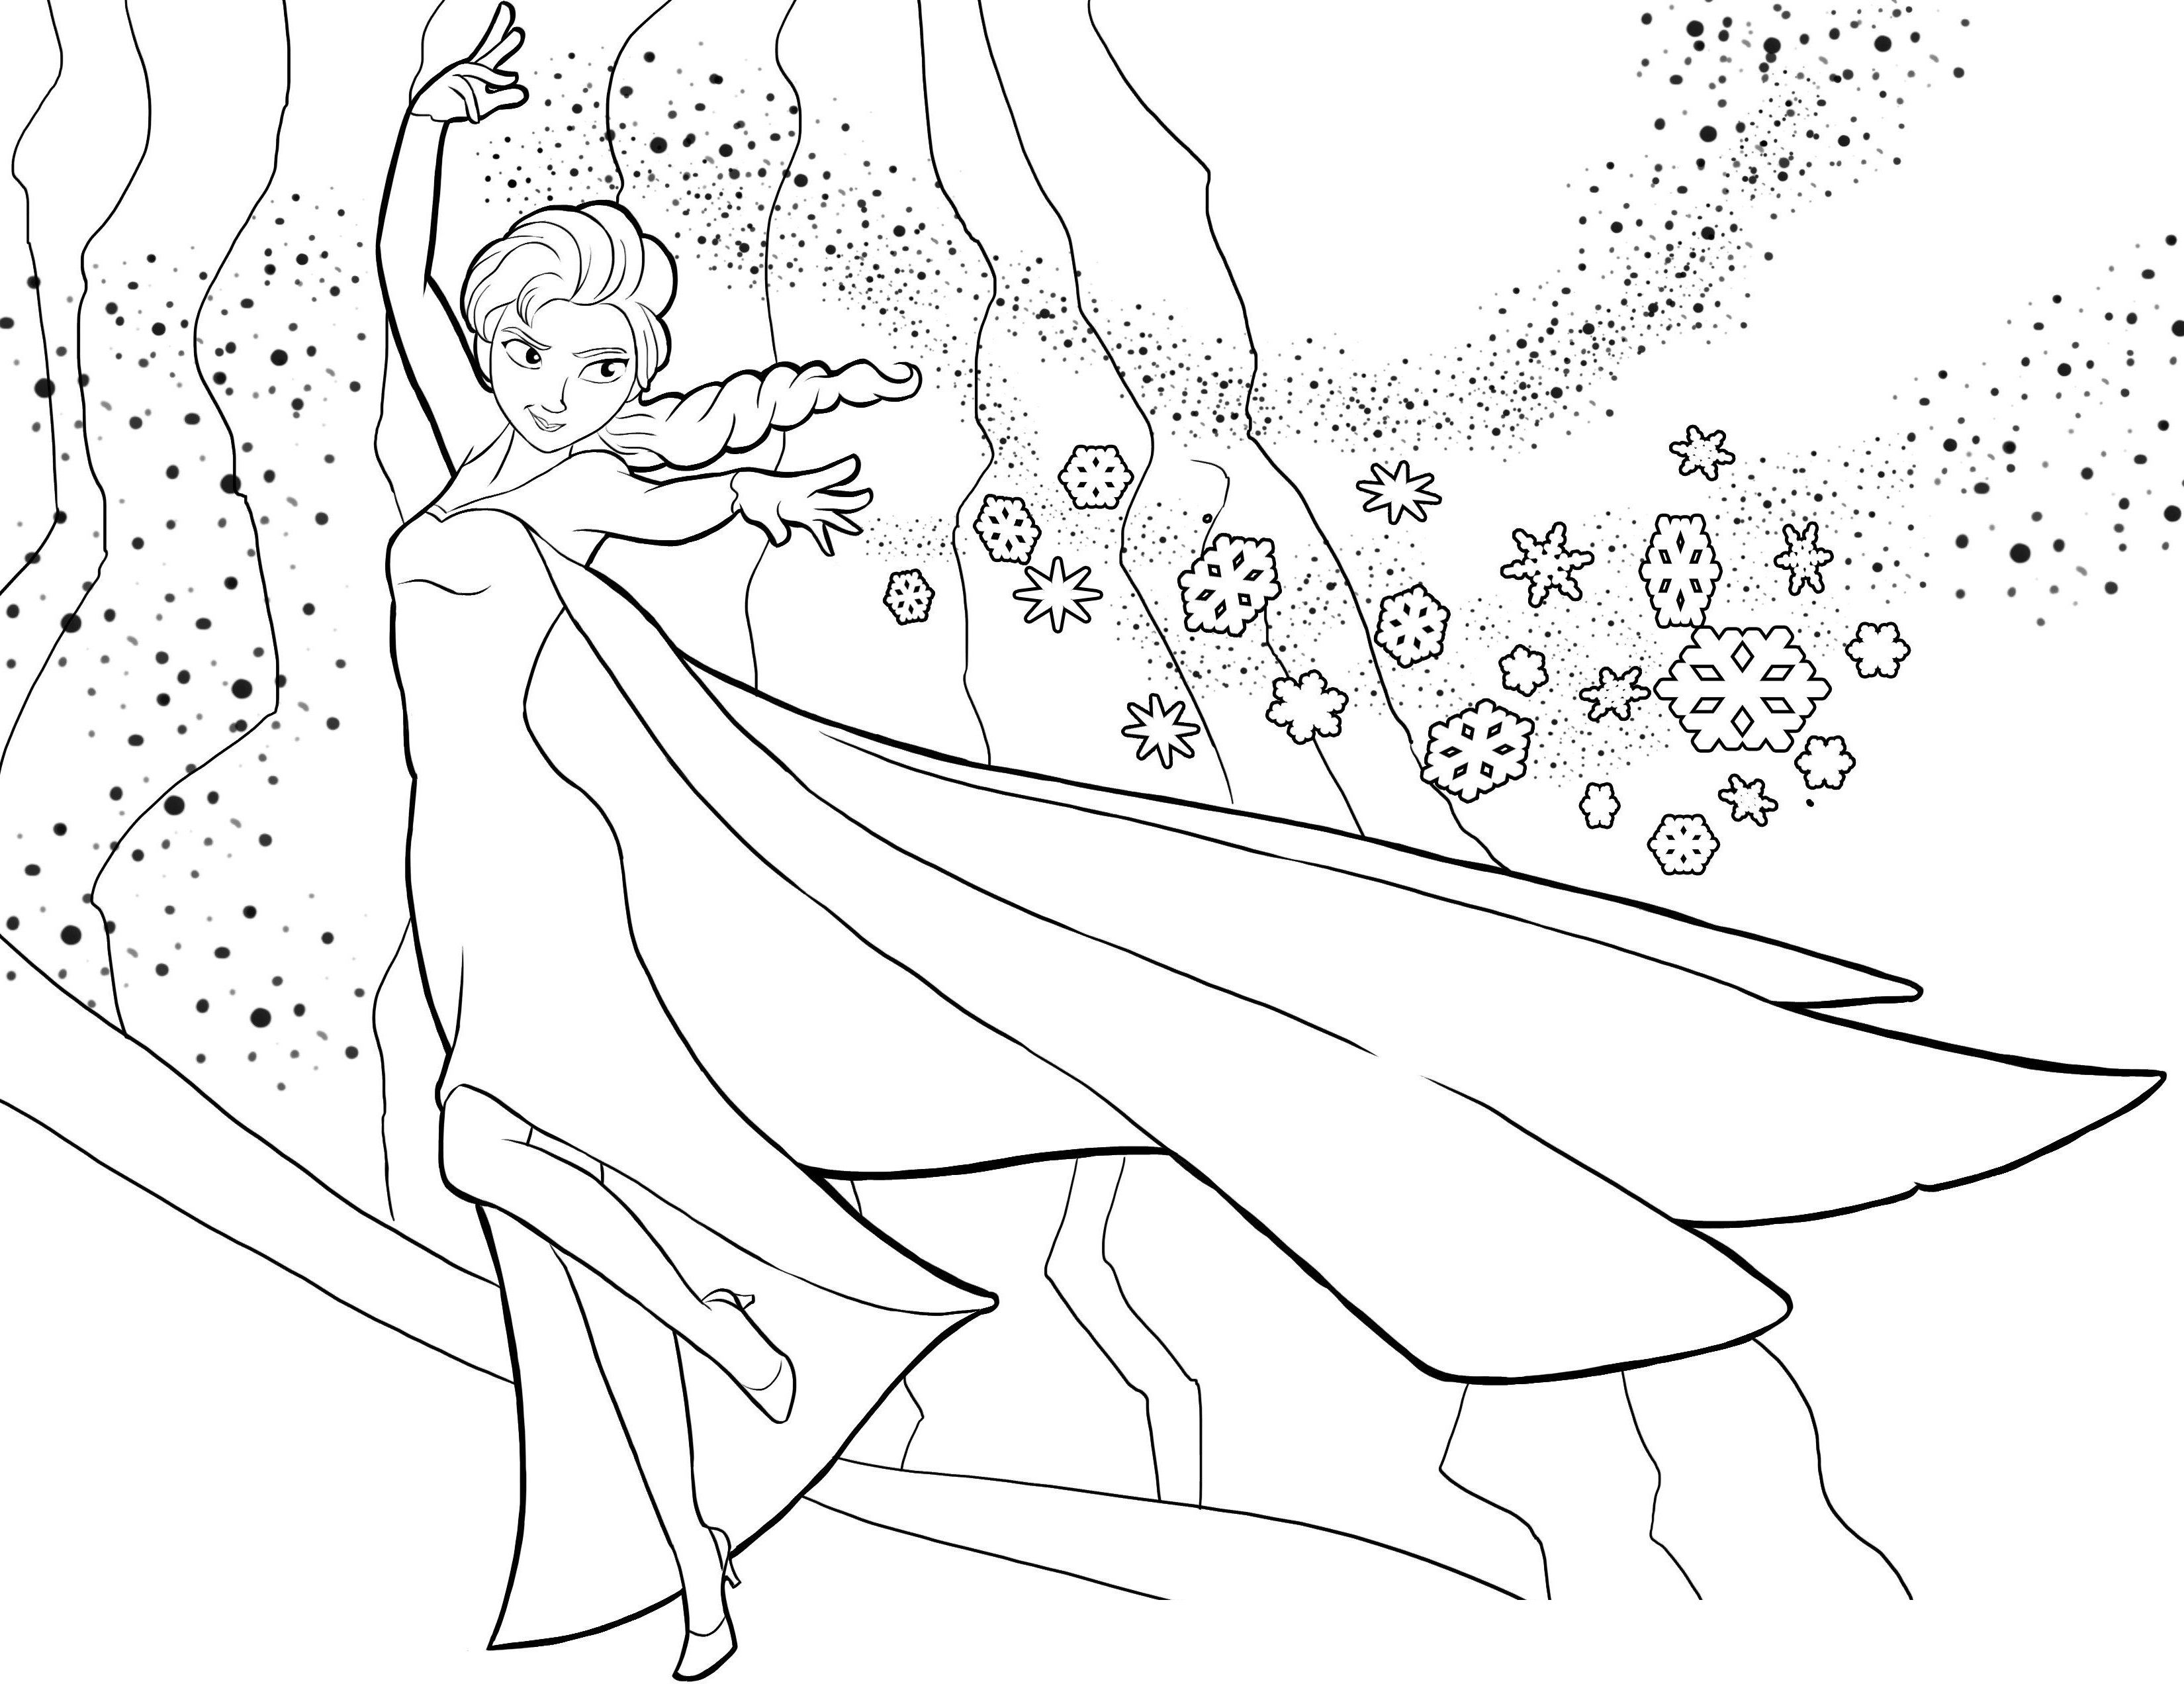 Frozen Coloring Pages Pdf For Free Usage Educative Printable Elsa Coloring Pages Frozen Coloring Pages Elsa Coloring